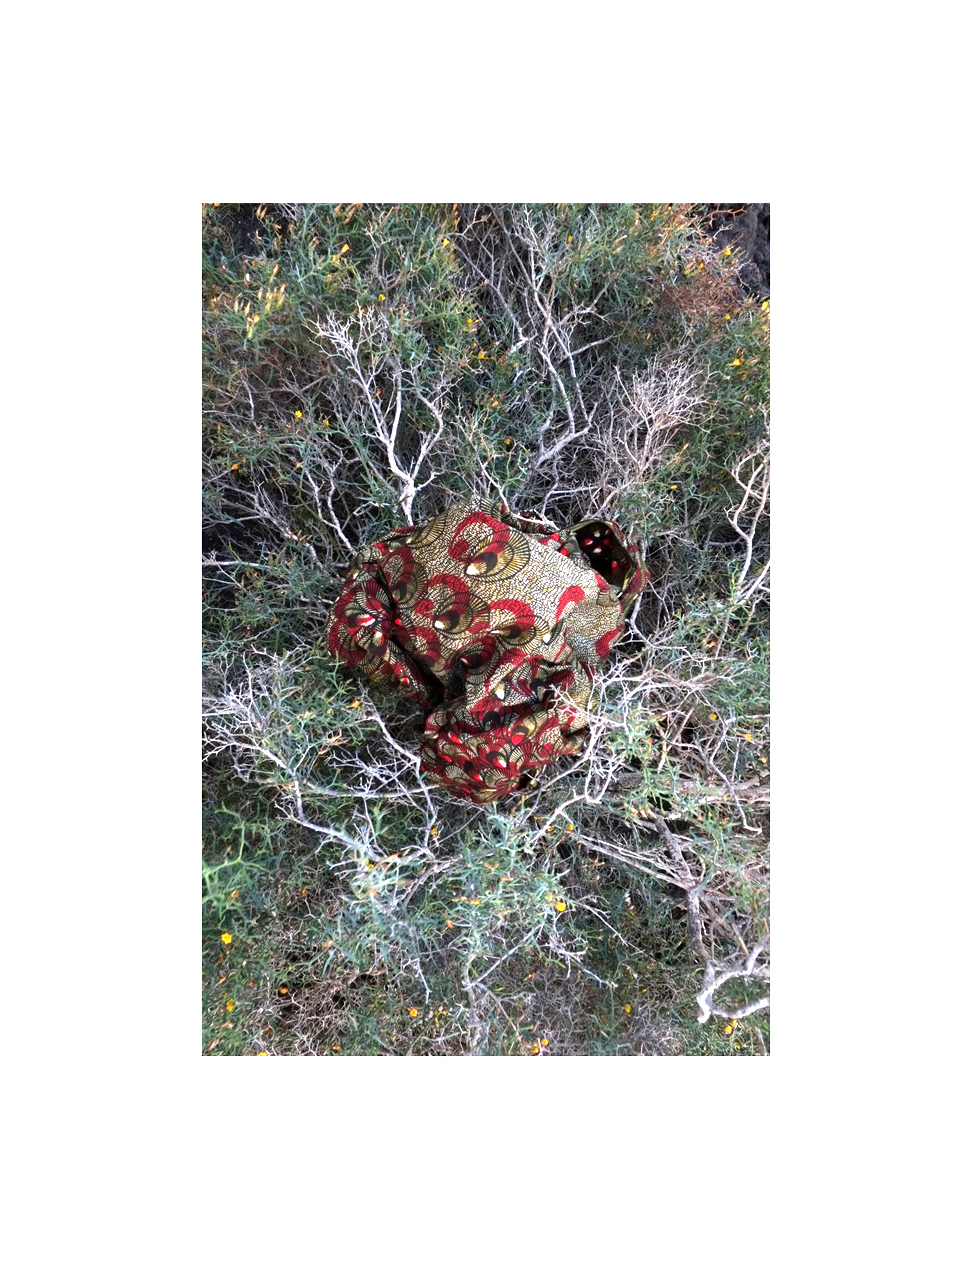 L.Pizzani The nest (2015). 20x30 cm on 40x60 cm paper. Pigment ink print on cotton paper. Edition of 20. £ 120